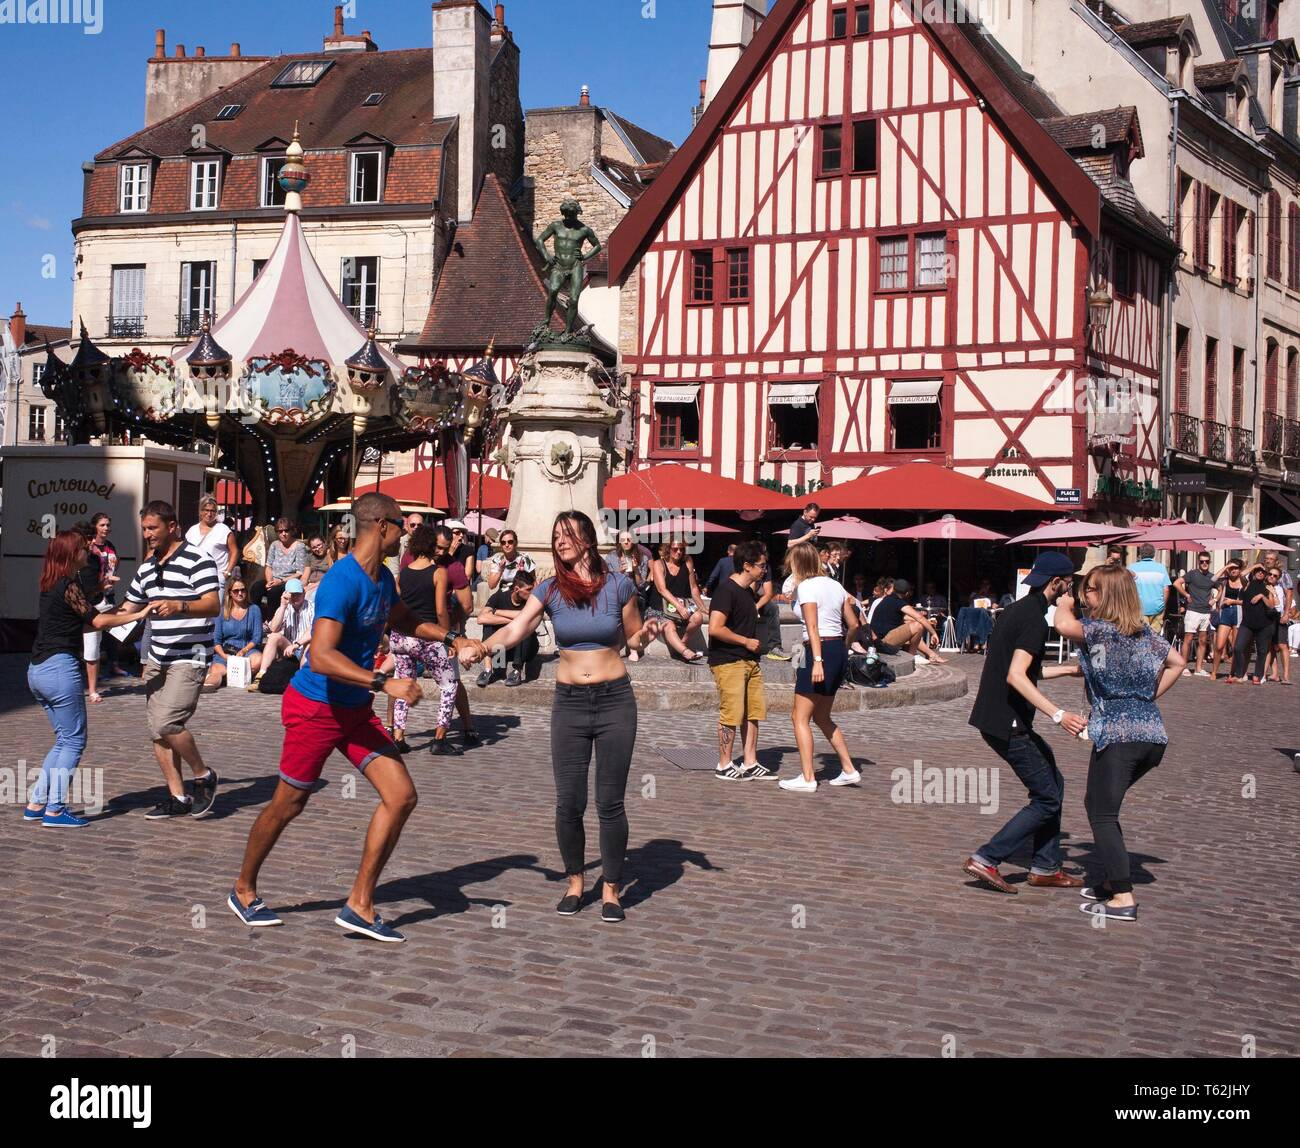 The Picturesque city of Dijon in the Burgundy region of France - Stock Image